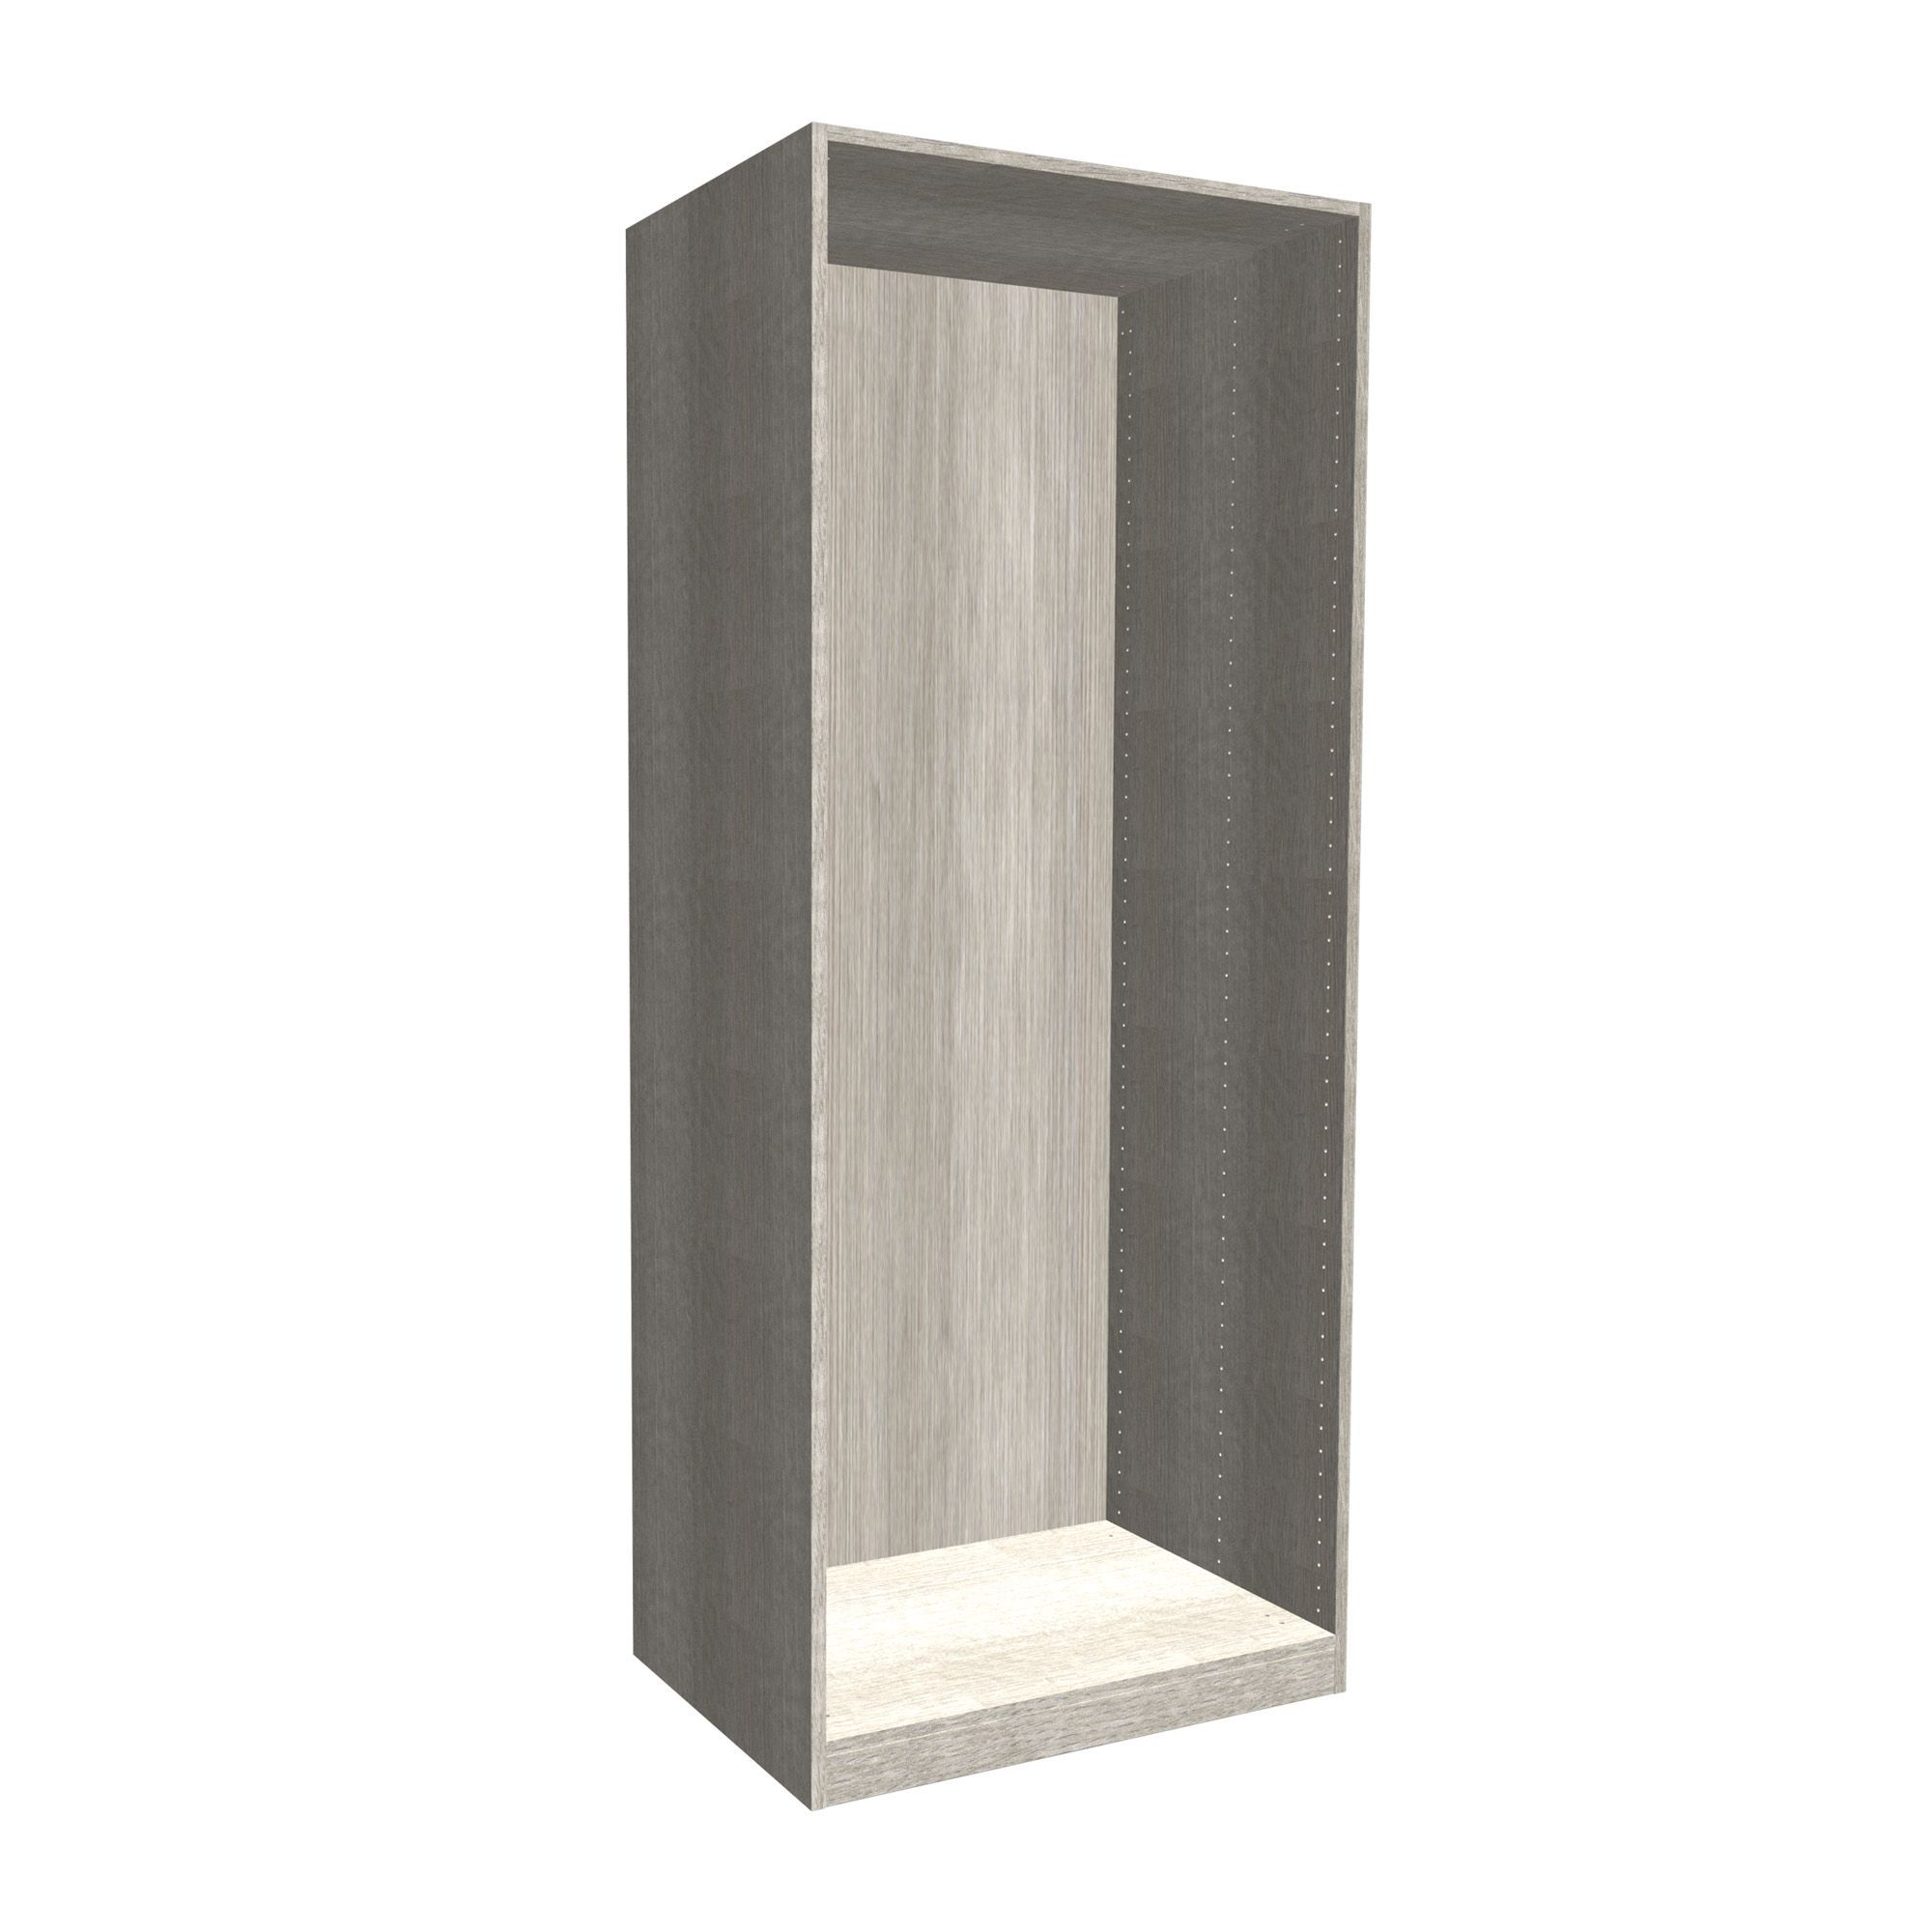 Oak Effect Kitchen Cabinets: Form Darwin Grey Oak Effect Wardrobe Cabinet (H)2004mm (W